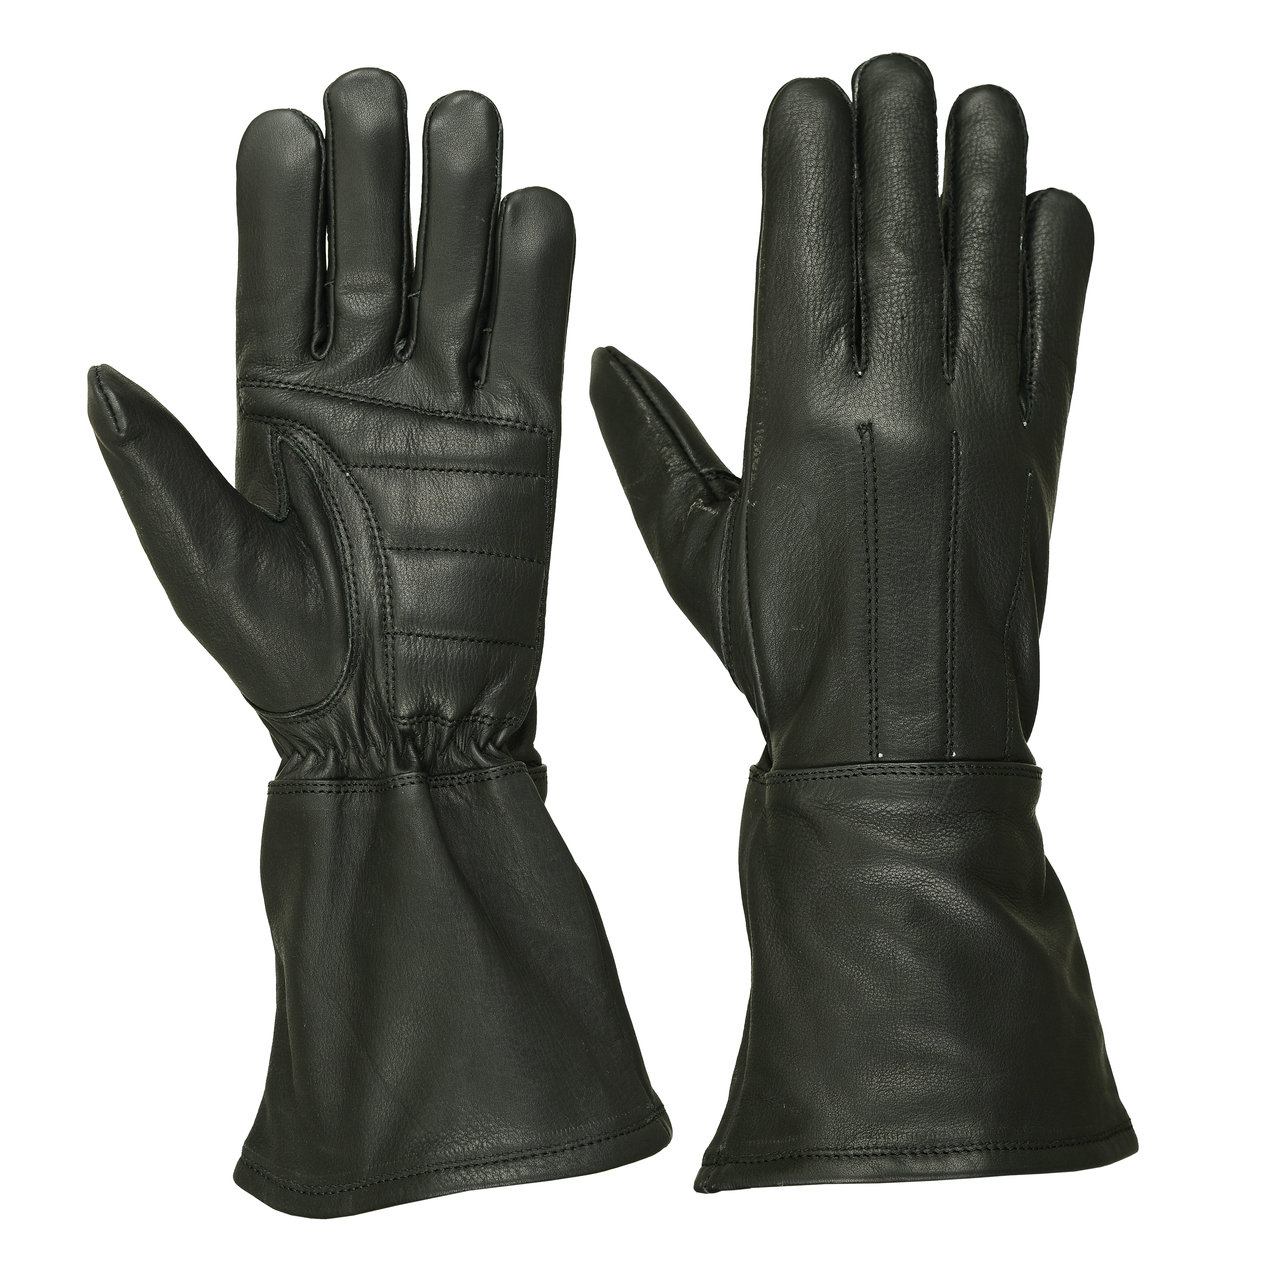 Men's Water Resistant Deerskin Gauntlet Glove